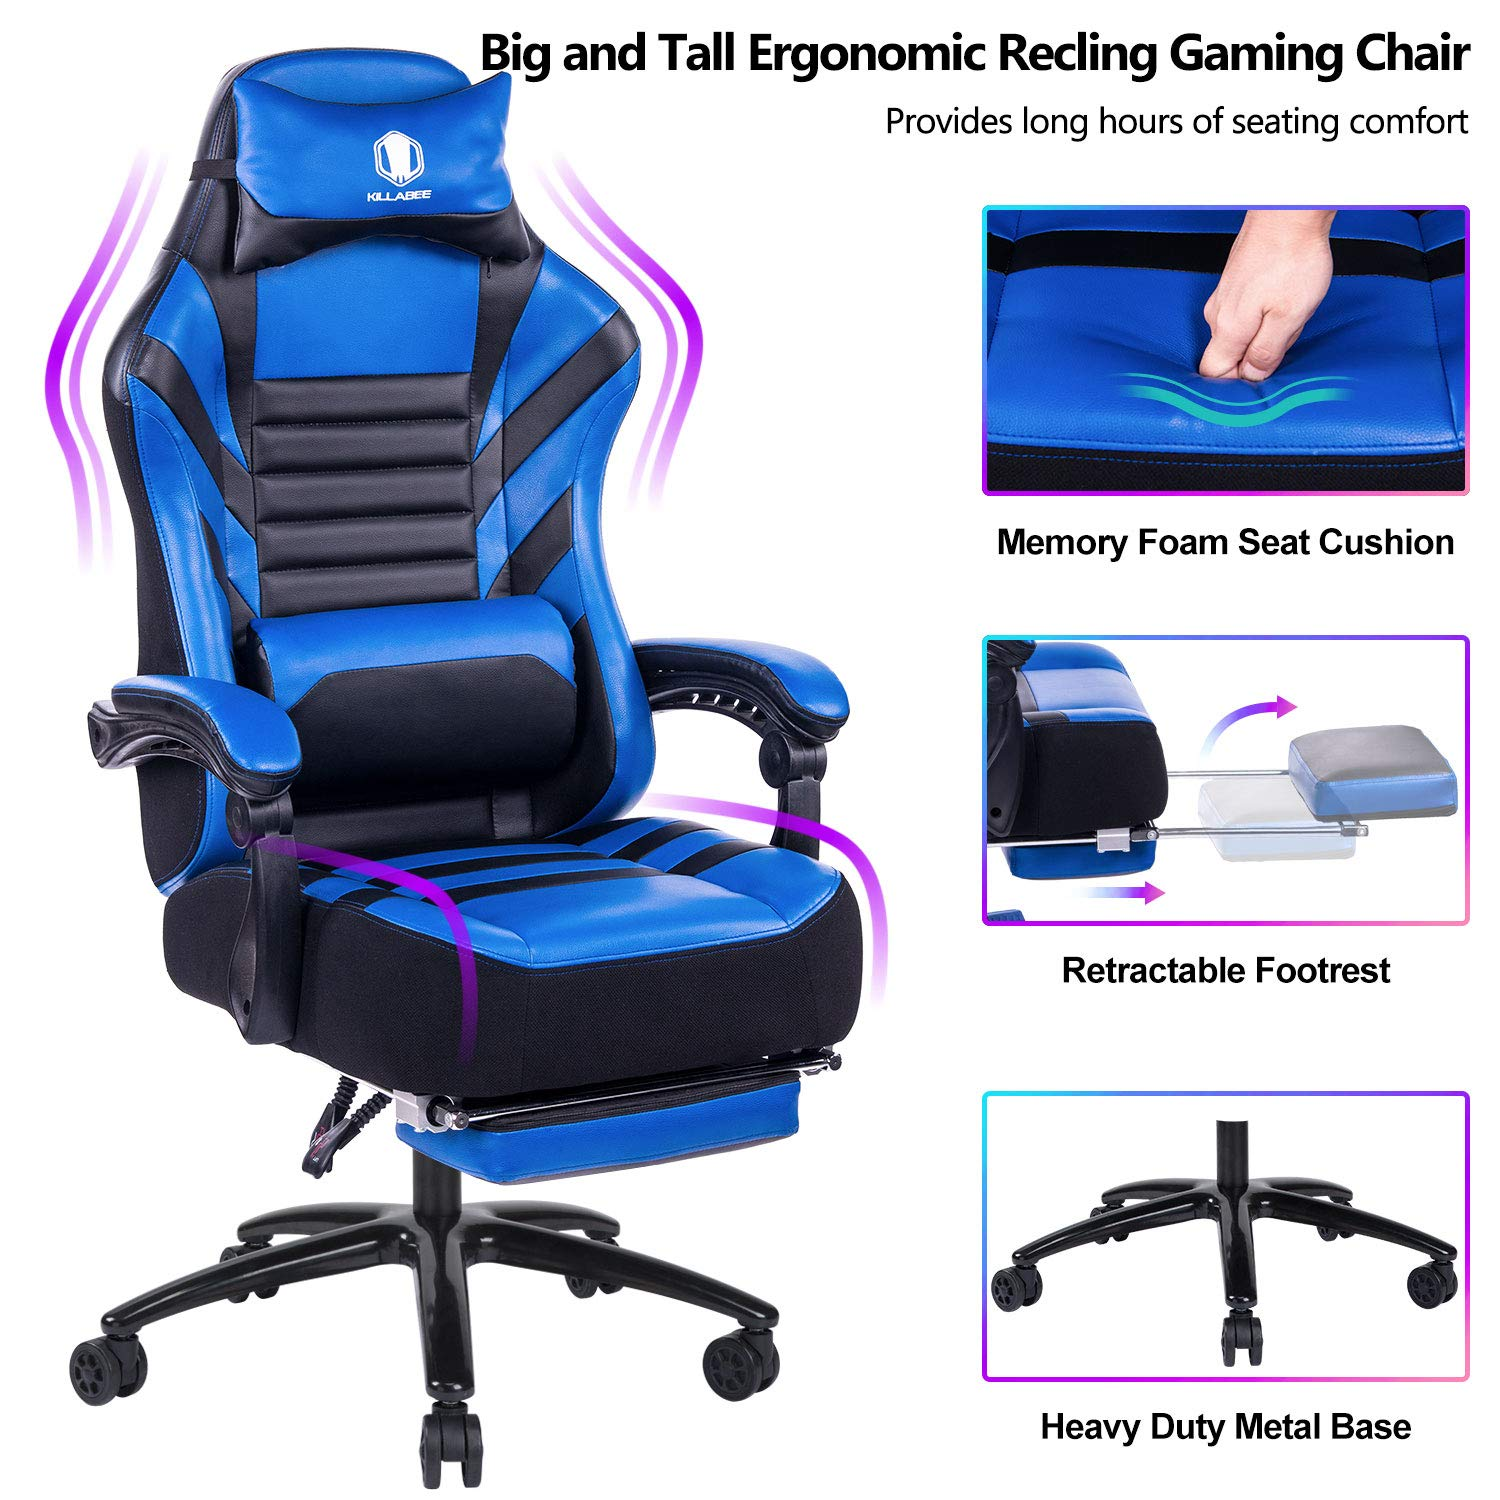 VON RACER Big & Tall 400lb Memory Foam Reclining Gaming Chair Metal Base - Adjustable Back Angle and Retractable Footrest Ergonomic High-Back Leather Racing Executive Computer Desk Office Chair, Blue by VON RACER